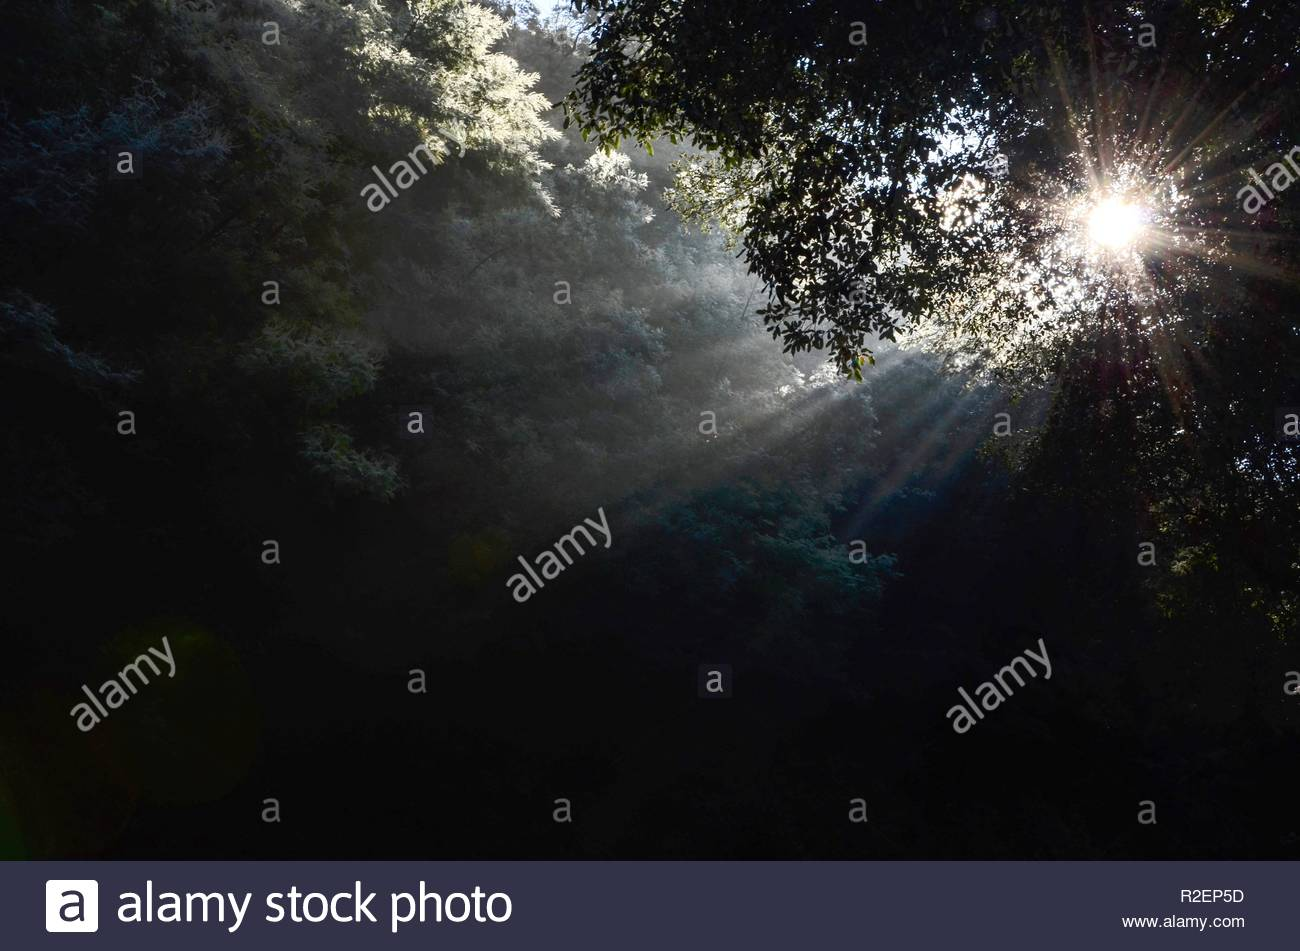 Sunlight beams through forest in winter, hope, grief, nature, light, trees, sky, lonely, end, aim, december, weather, cold, season, warmth - Stock Image